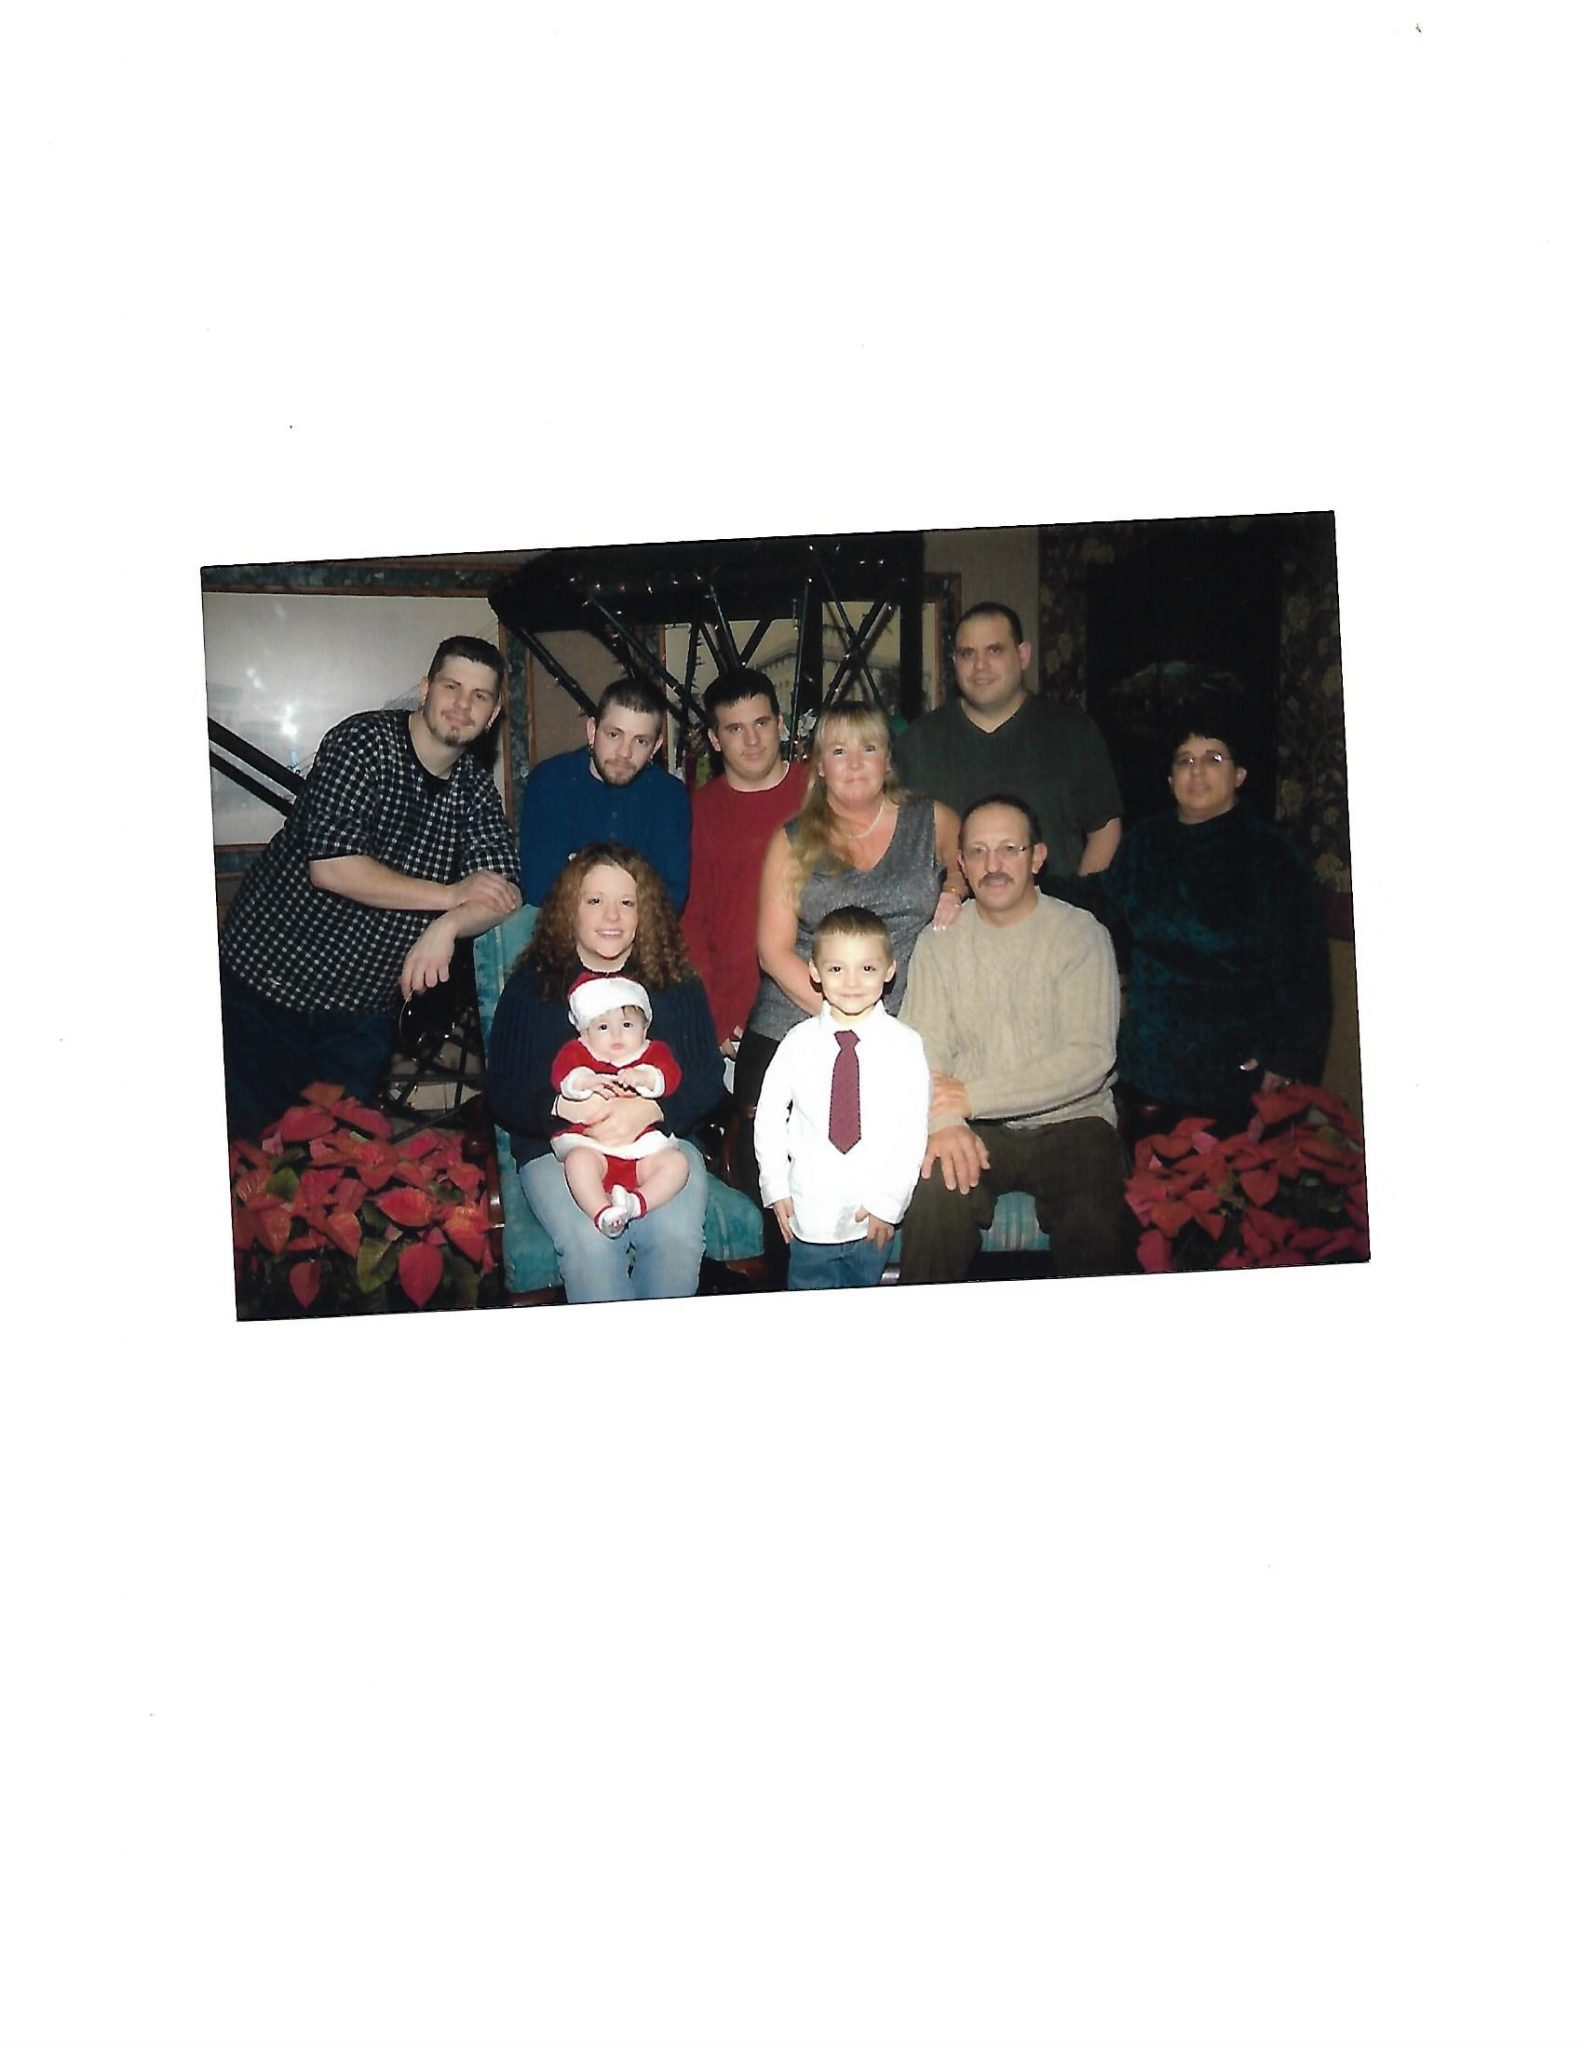 Family Christmas in Watertown NY in 2005. <br /> Kenneth P. Nyland III, Monica, Tia, Alex<br /> Kenneth P. Nyland Sr, Kimberly Nyland<br /> Kevin Nyland<br /> Cindy Nyland-Hunt, Eric Hunt, Douglas Lockrow Jr